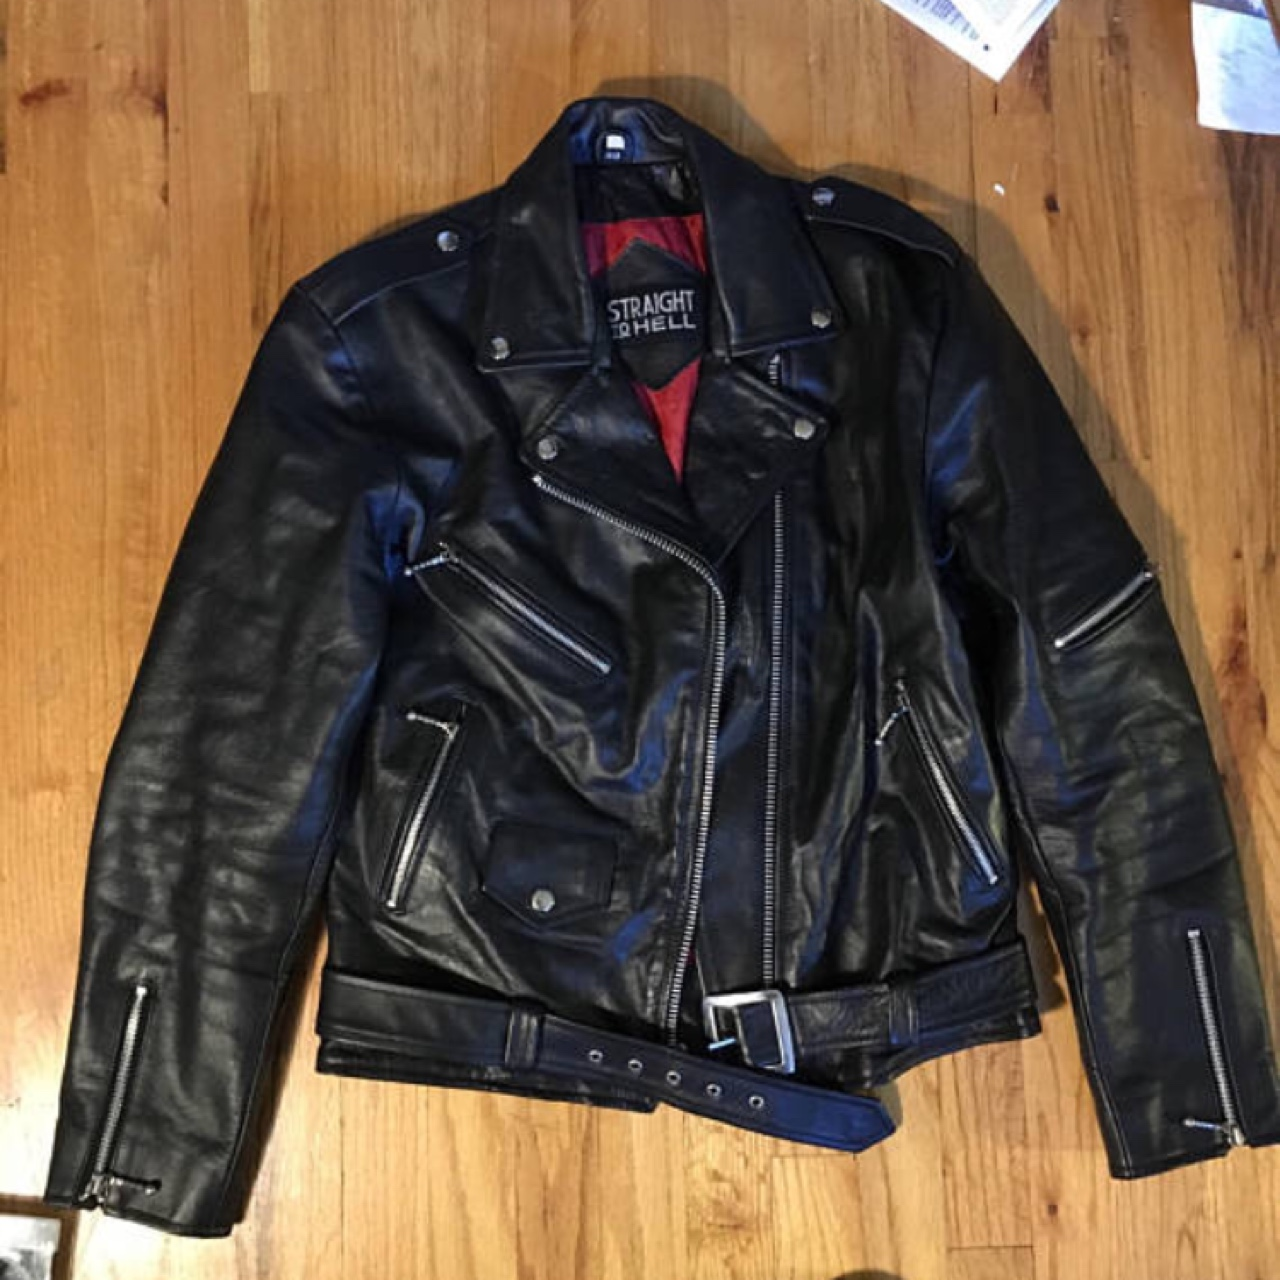 7318f2120 Size 40 straight to hell commando leather jacket... - Depop